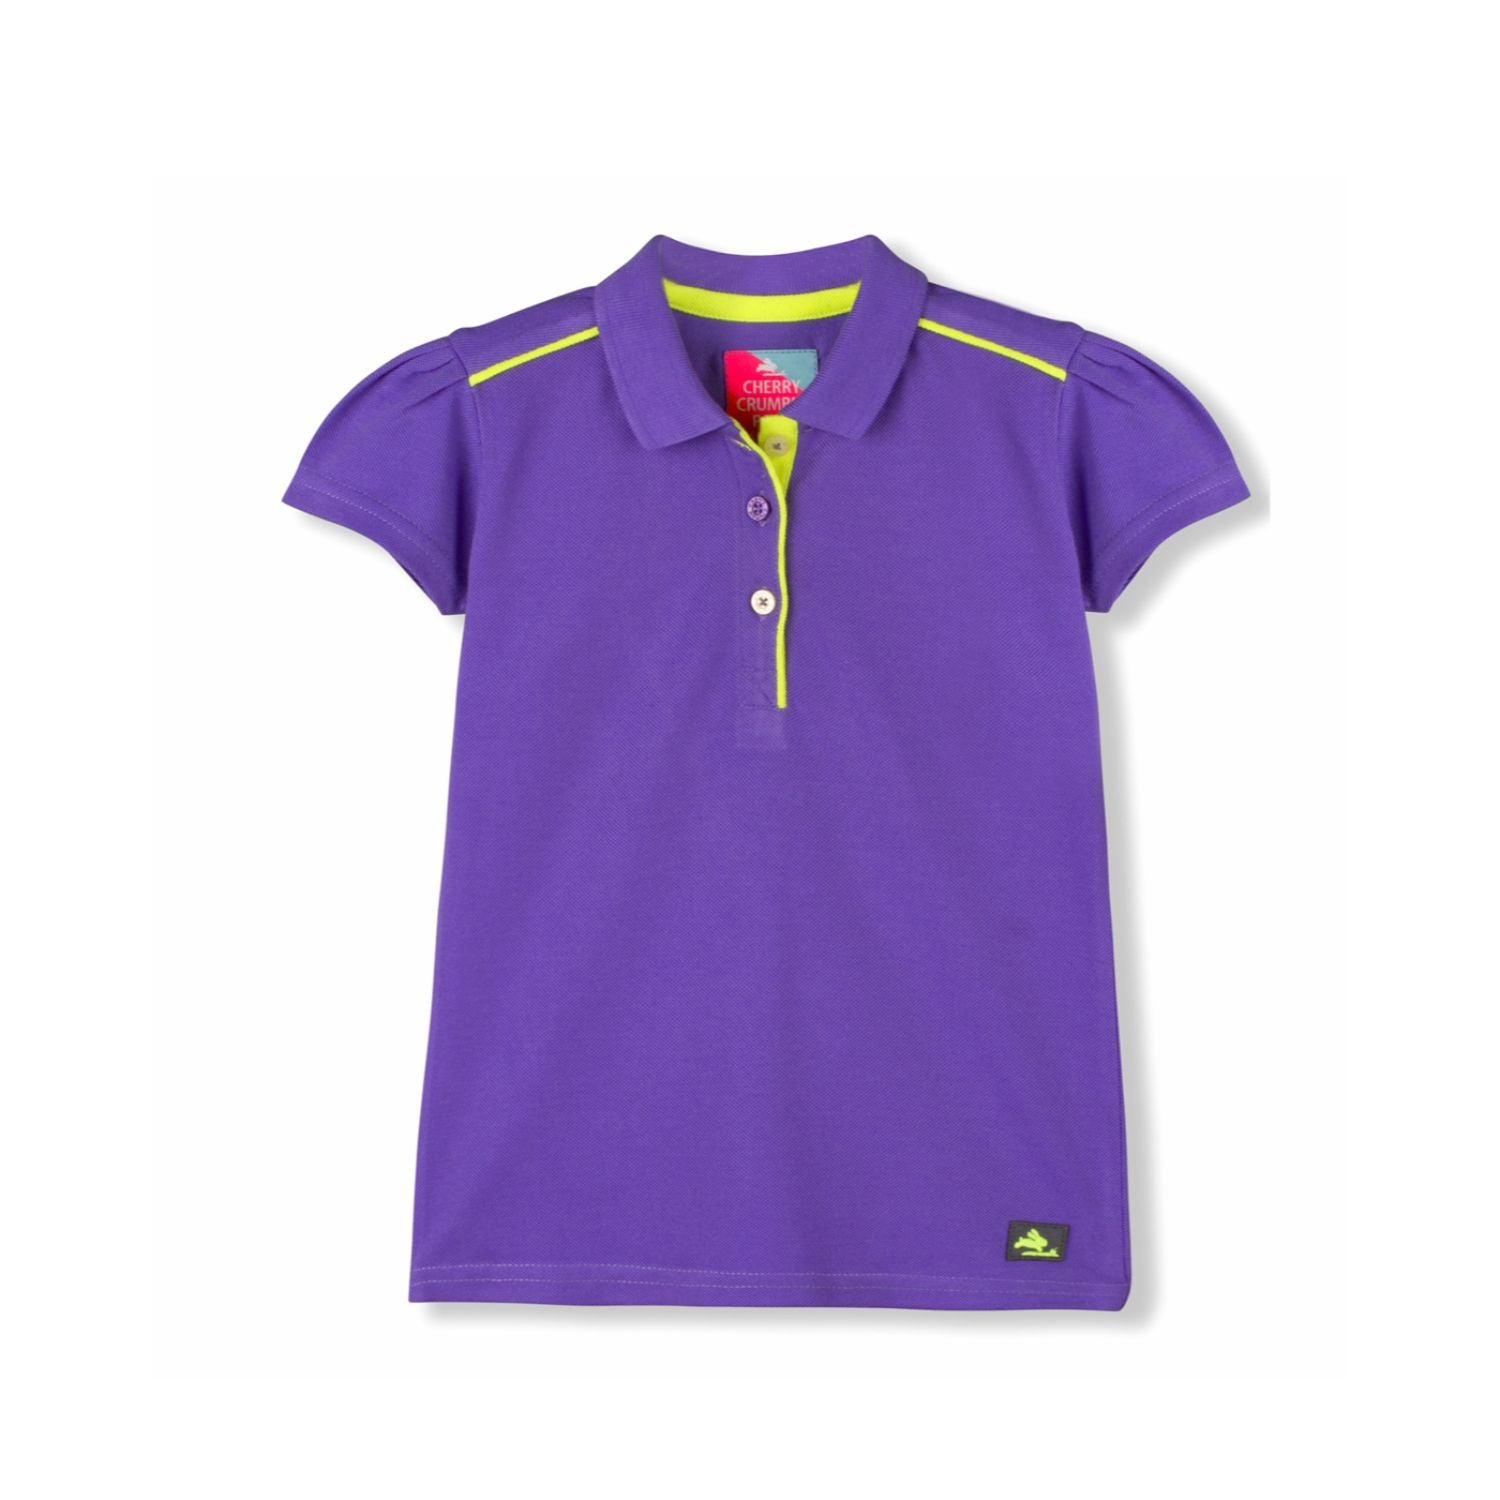 Fancy Polo Shirt for Girls